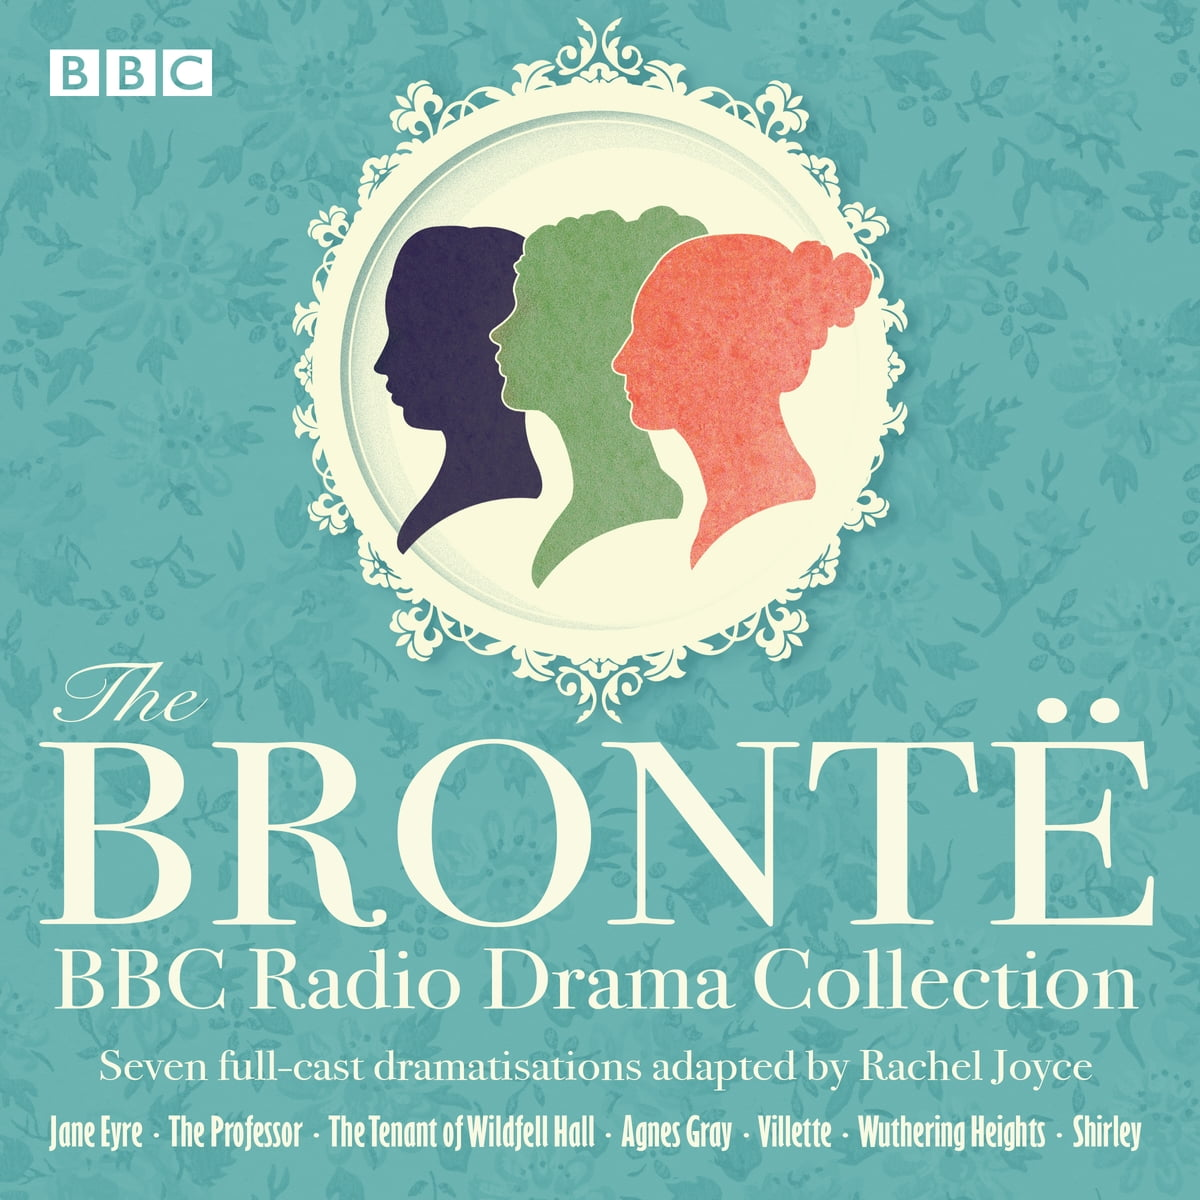 The Bronte BBC Radio Drama Collection Audiobook by Charlotte Bronte -  9781785299551 | Rakuten Kobo